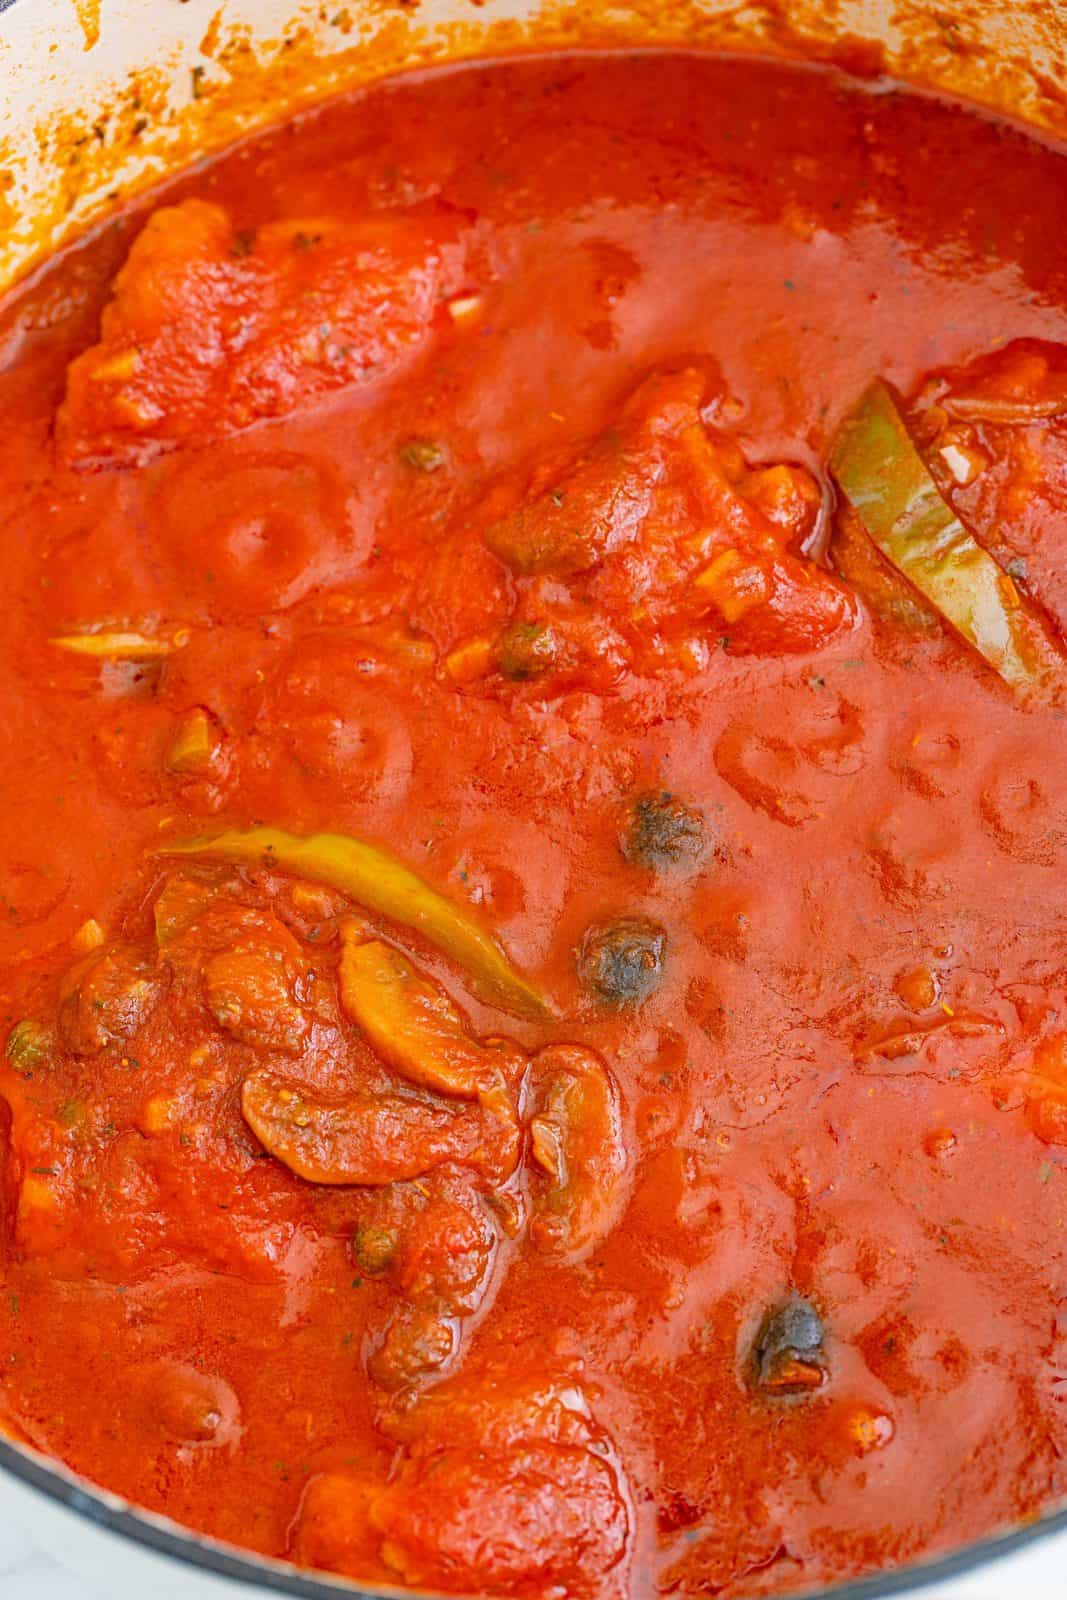 Sauce covering chicken as it simmers.